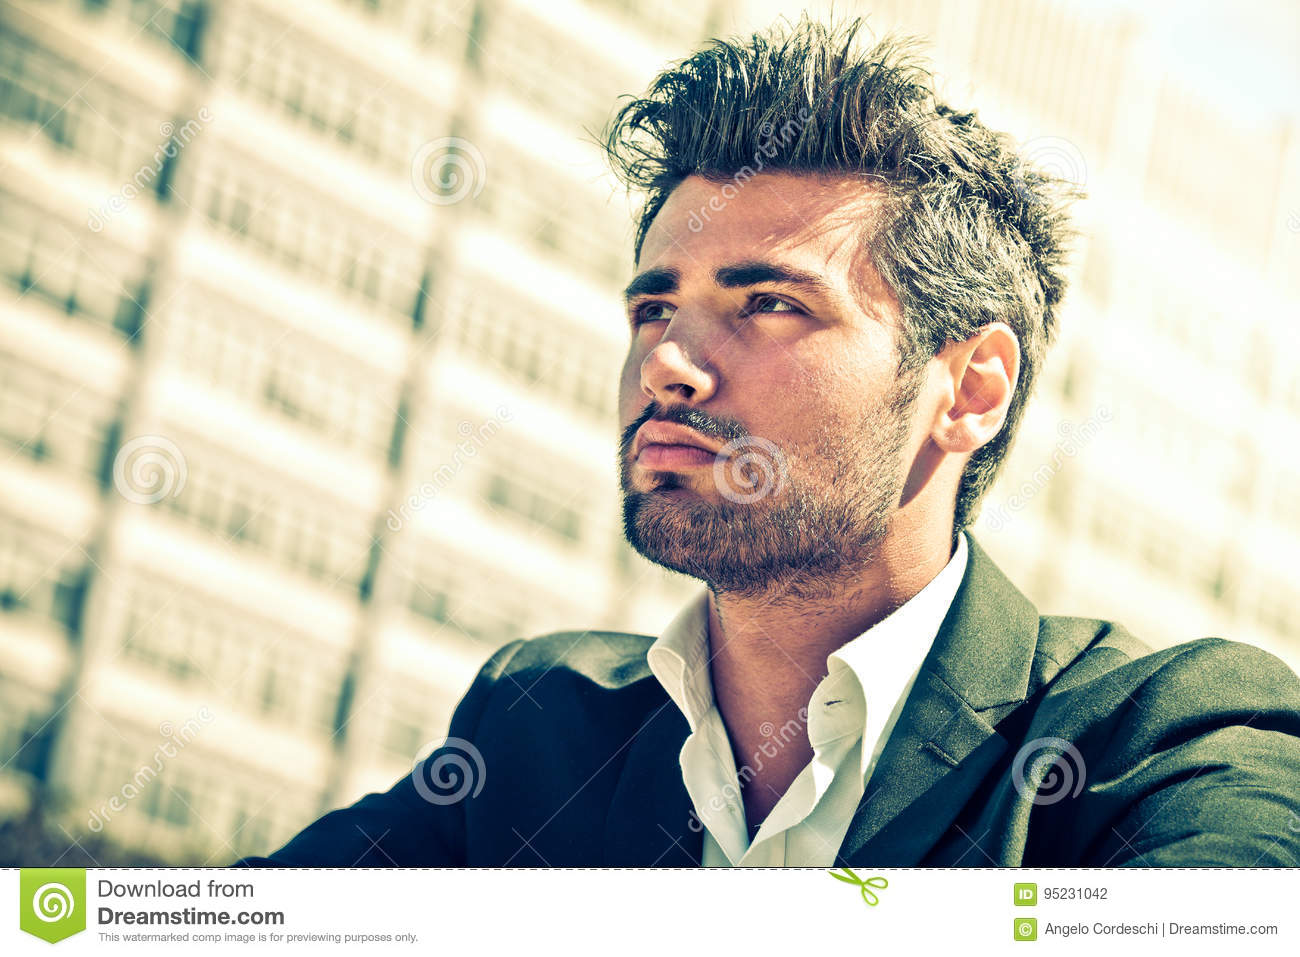 Download Handsome Businessman Thinking. Man Looking. Stock Photo - Image of fashion, adult: 95231042